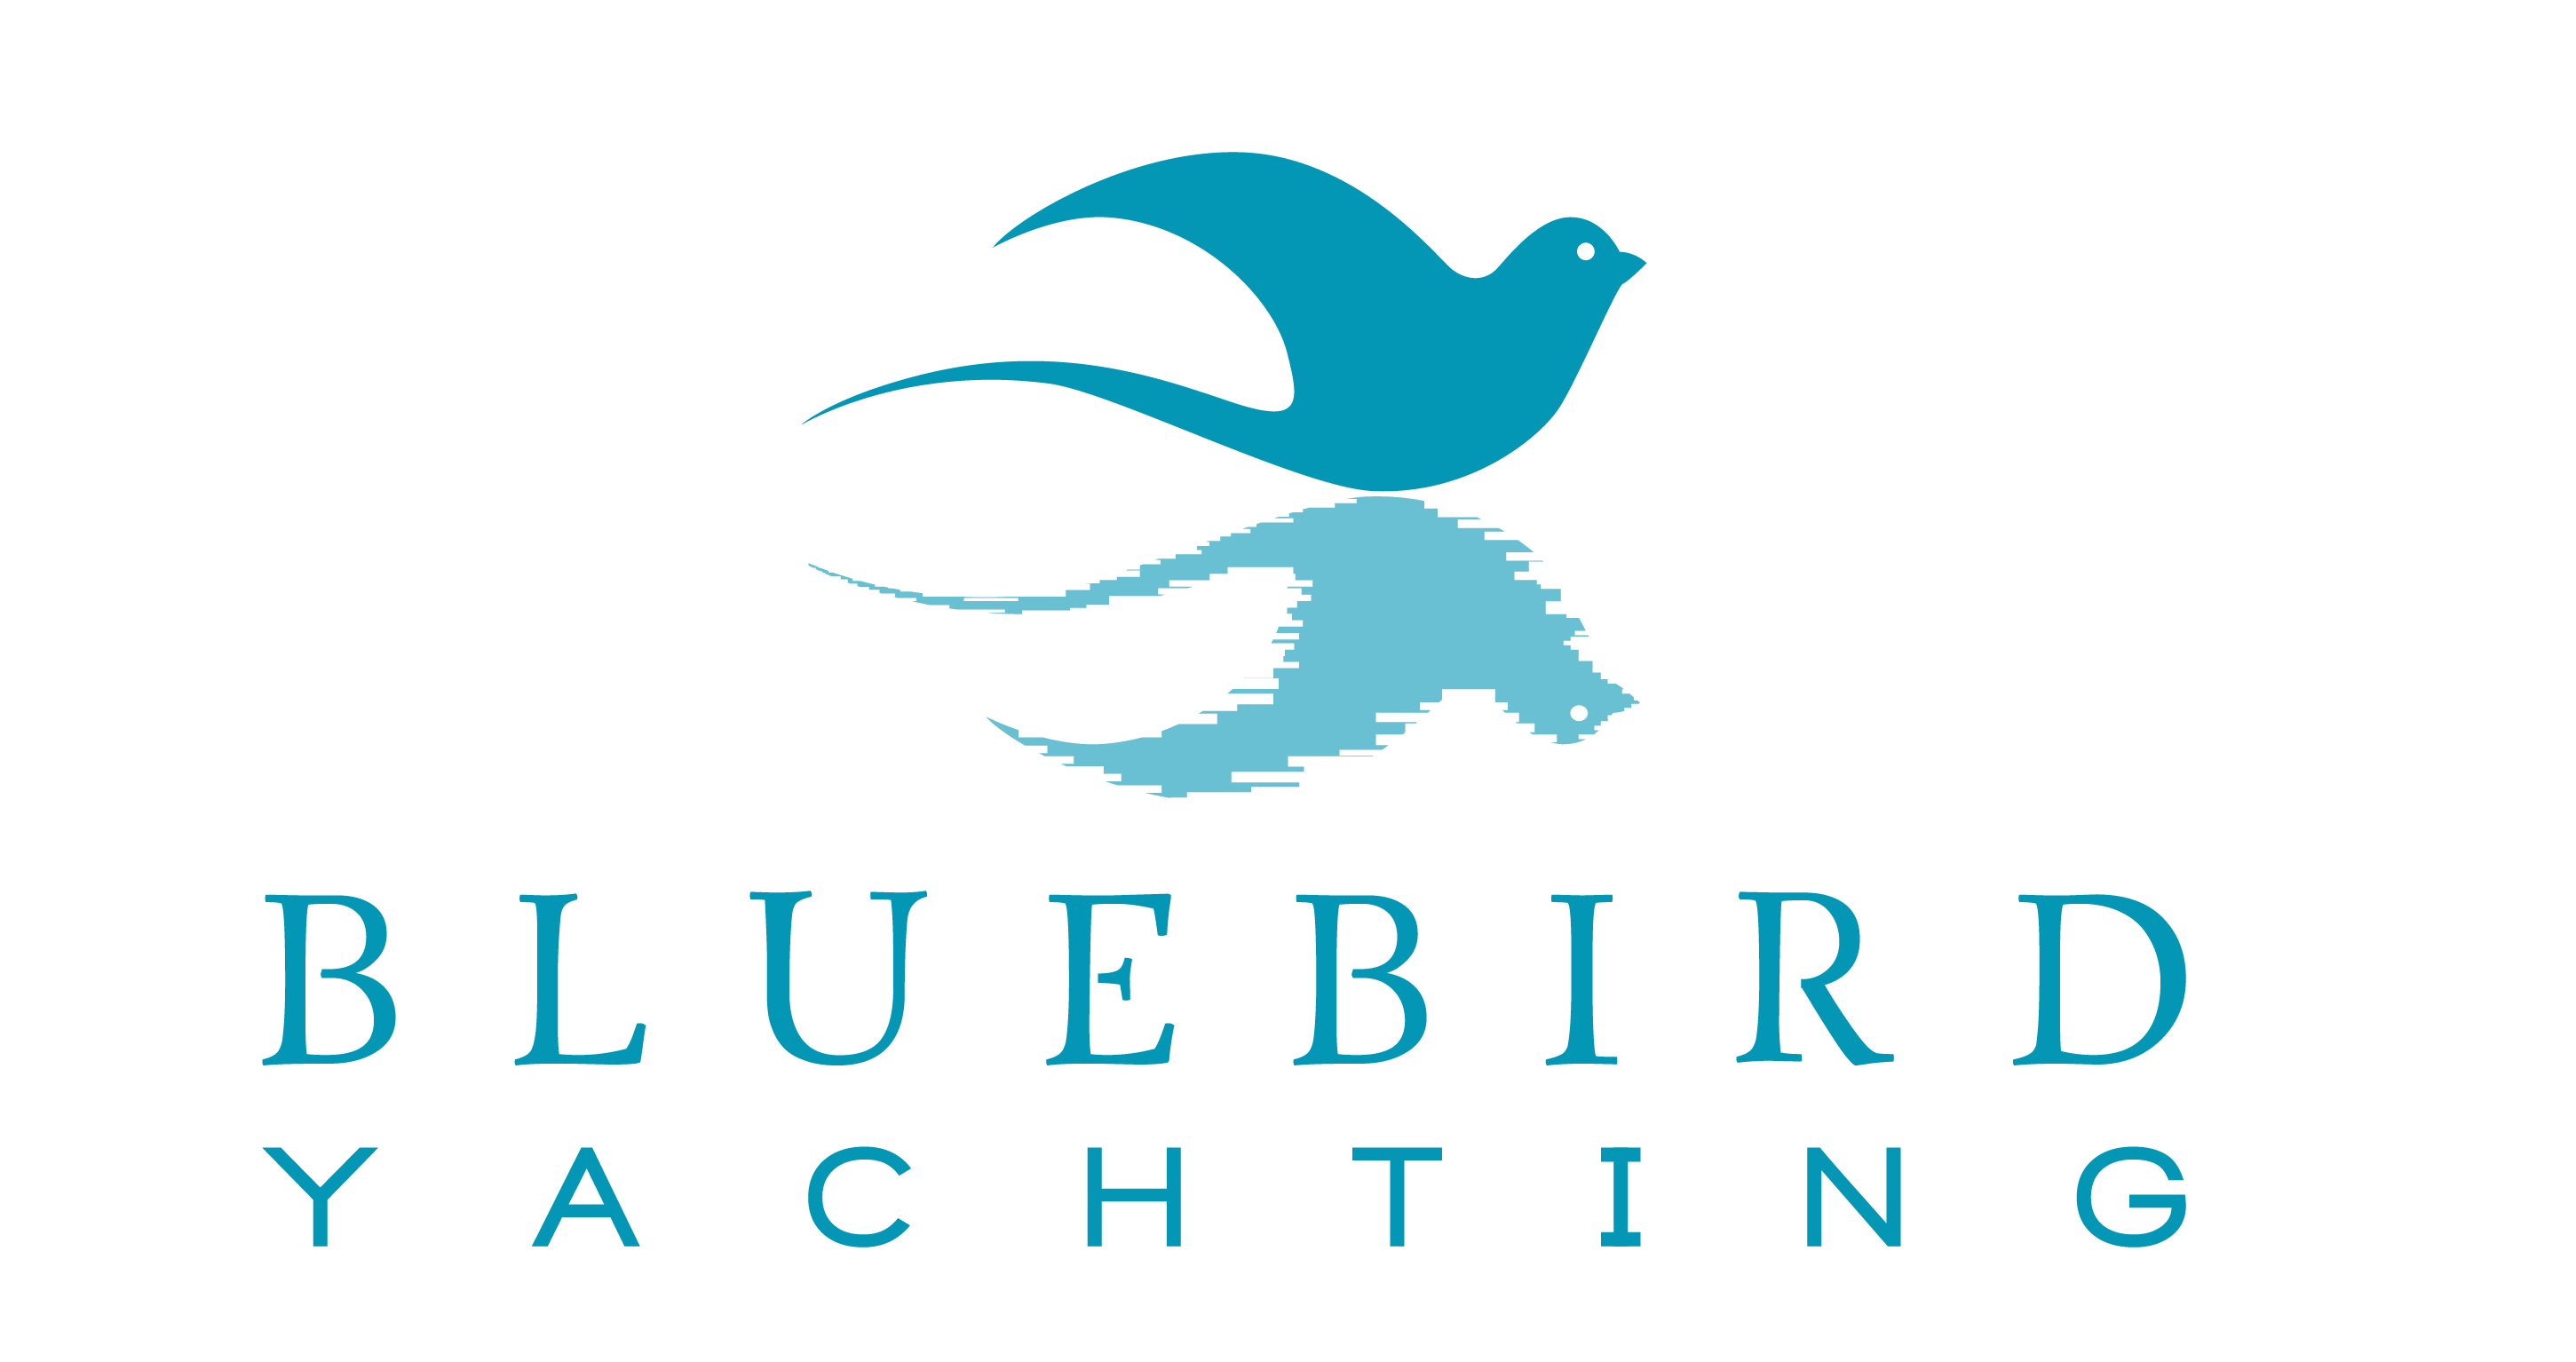 Bluebird Yachting | Sardinia | Bluebird Yachting